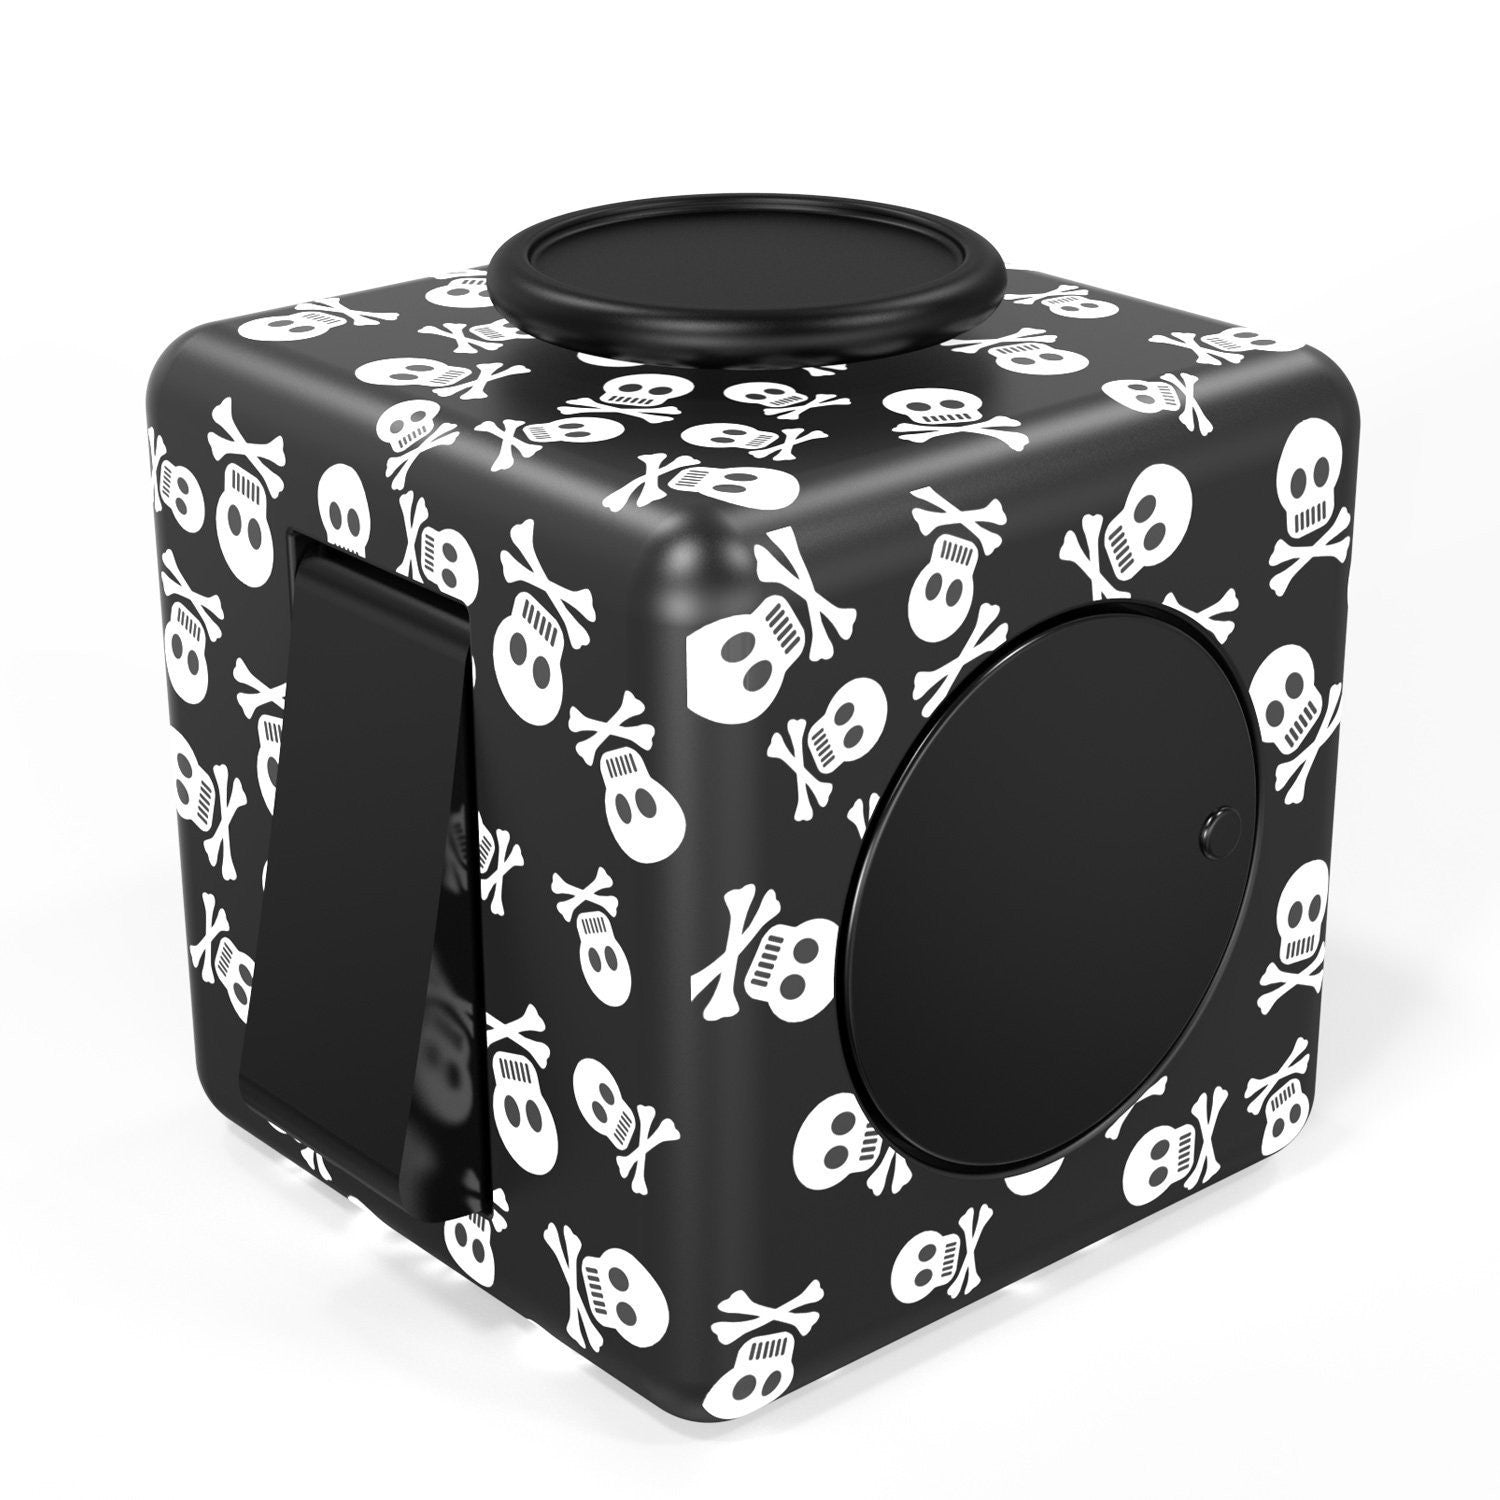 FIDPRO Fidget Cube, Silent Dice Toy - Click, Flip, Glide, Spin, Rub & Roll, Ultimate Hexagon with Quiet Clicker for Increased Focus & Attention and Stress & Anxiety Relief [SKULL]